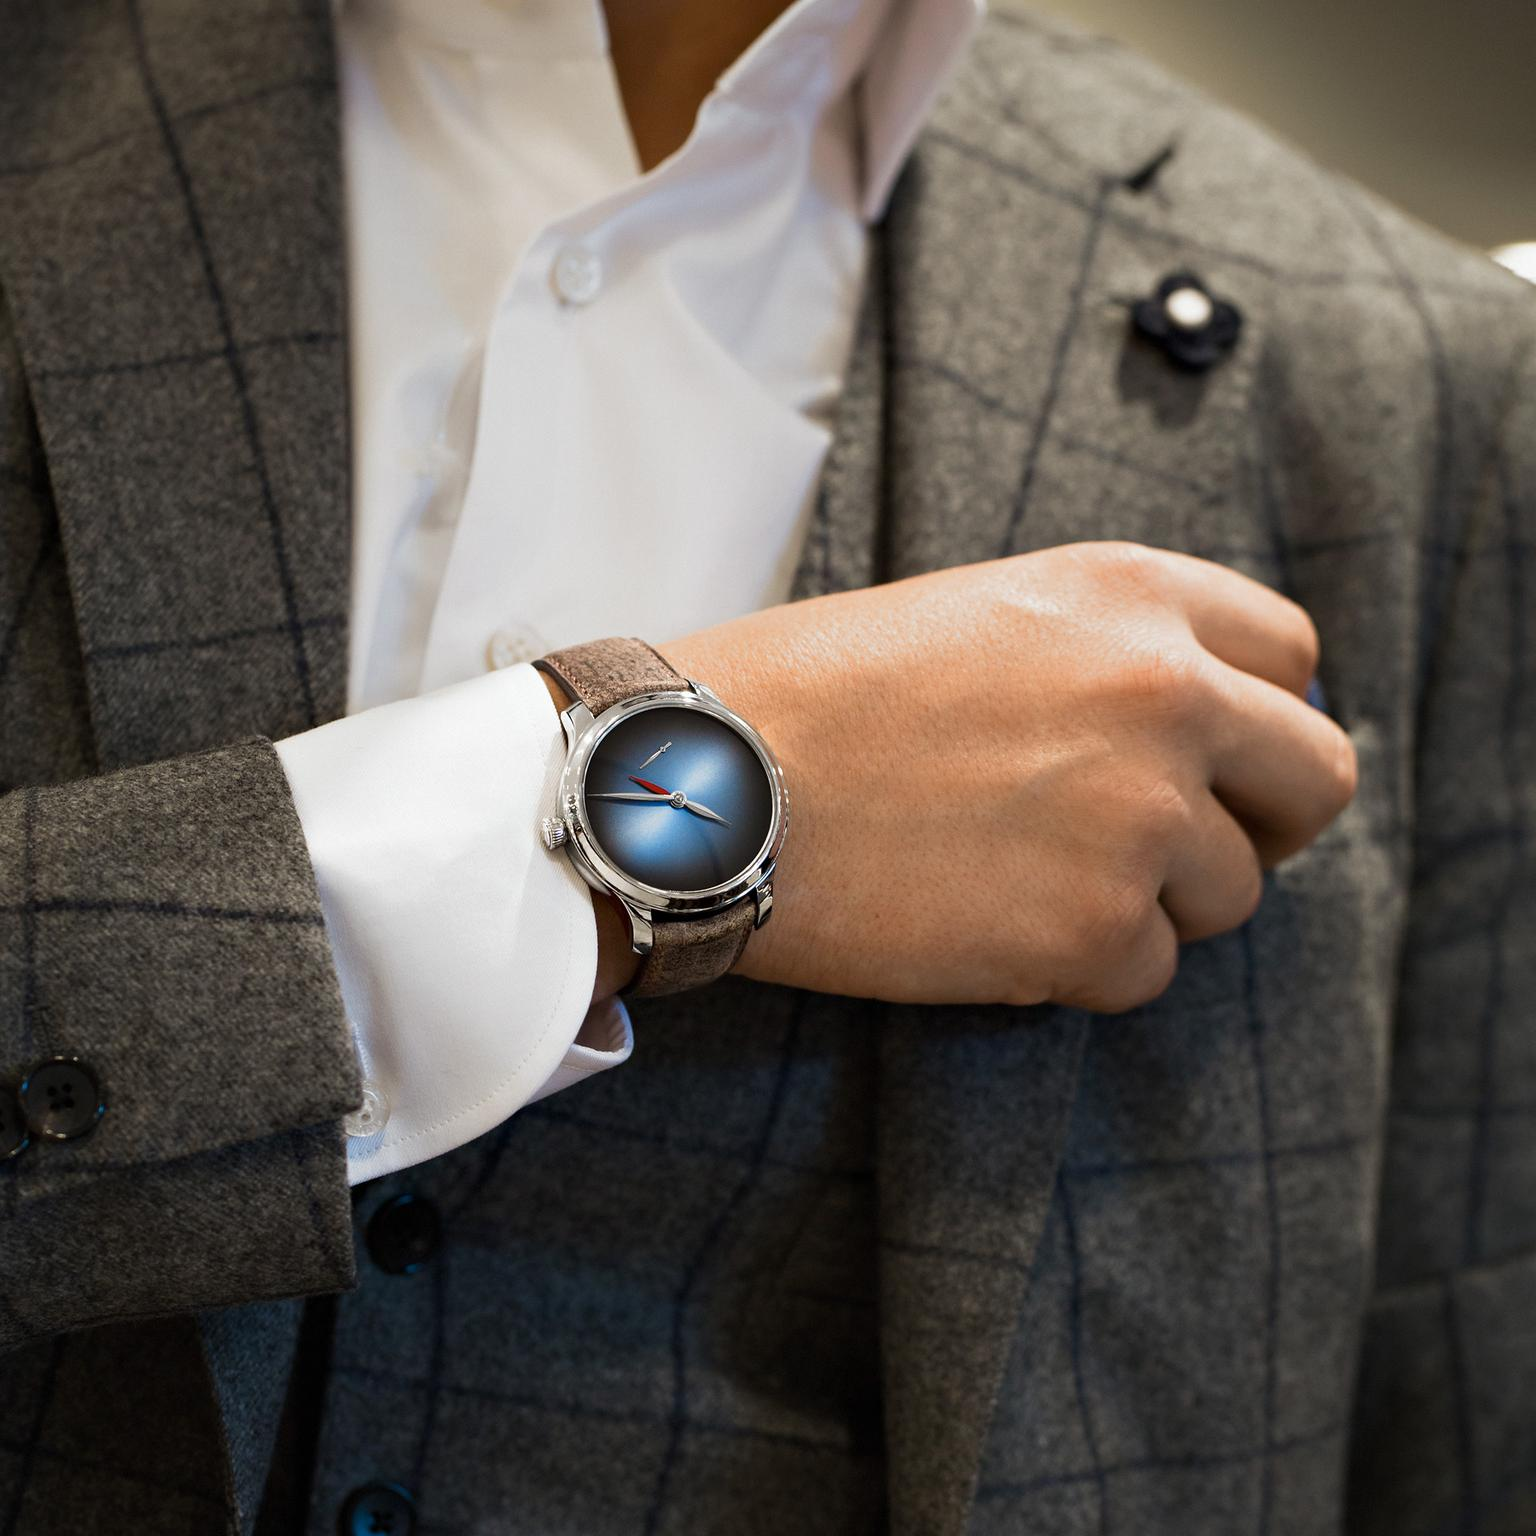 H. Moser & Cie Endeavour Dual Time watch lifestyle image